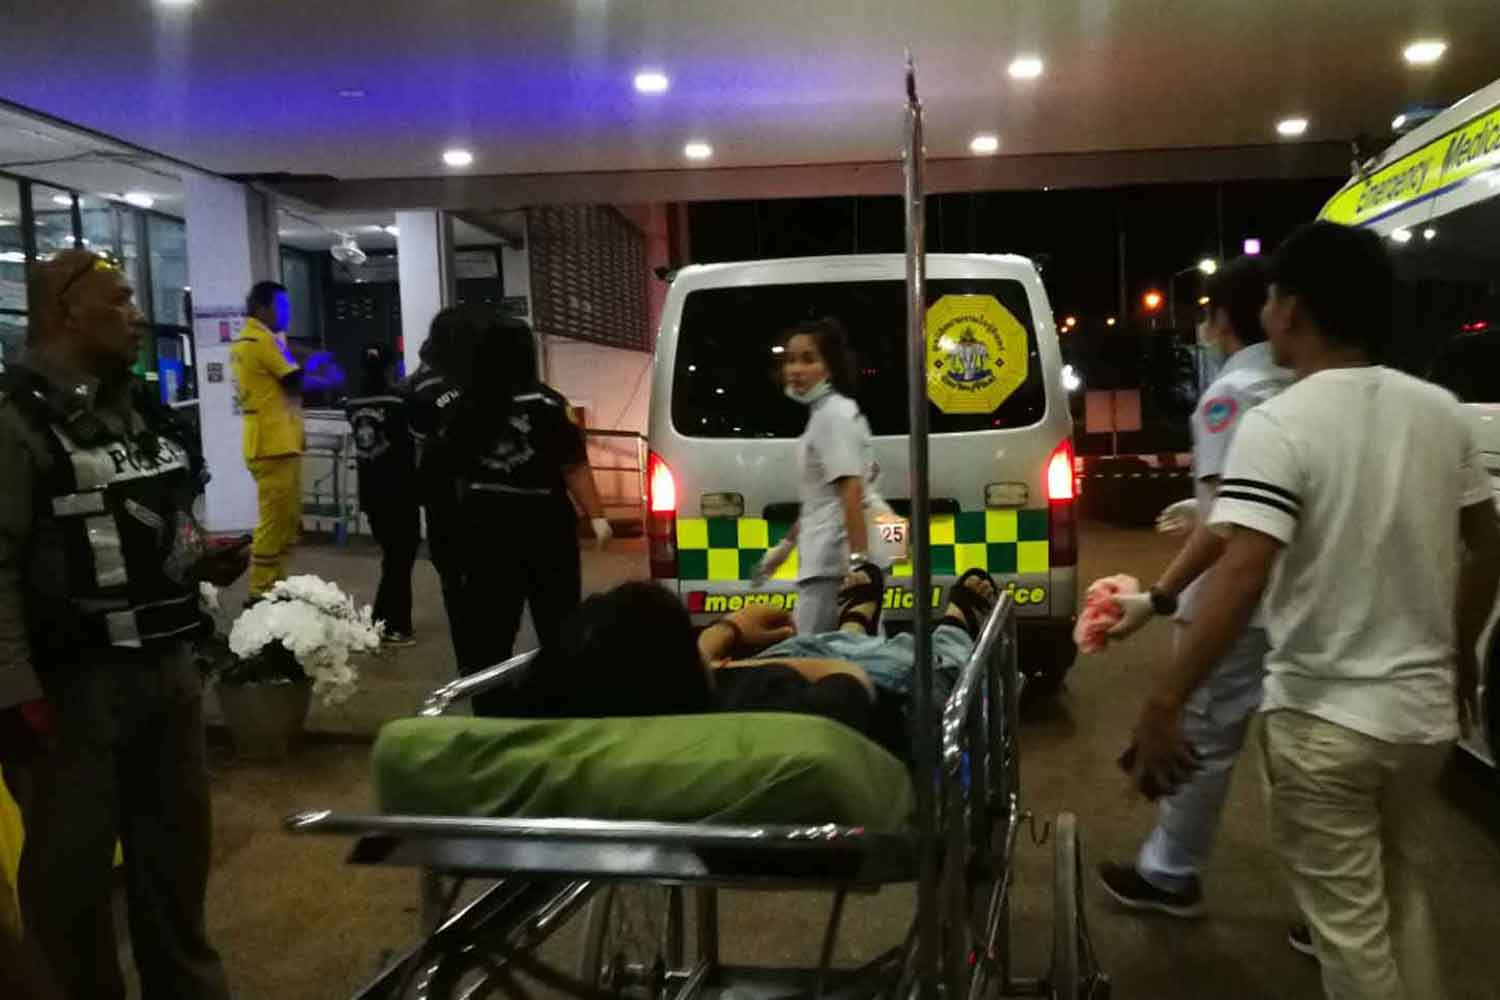 A young man injured during the restaurant brawl late on Monday night arrives by ambulance at Nang Rong Hospital, in Buri Ram province. One person was stabbed and two others hit by thrown bottles.(Photo: Surachai Piragsa)